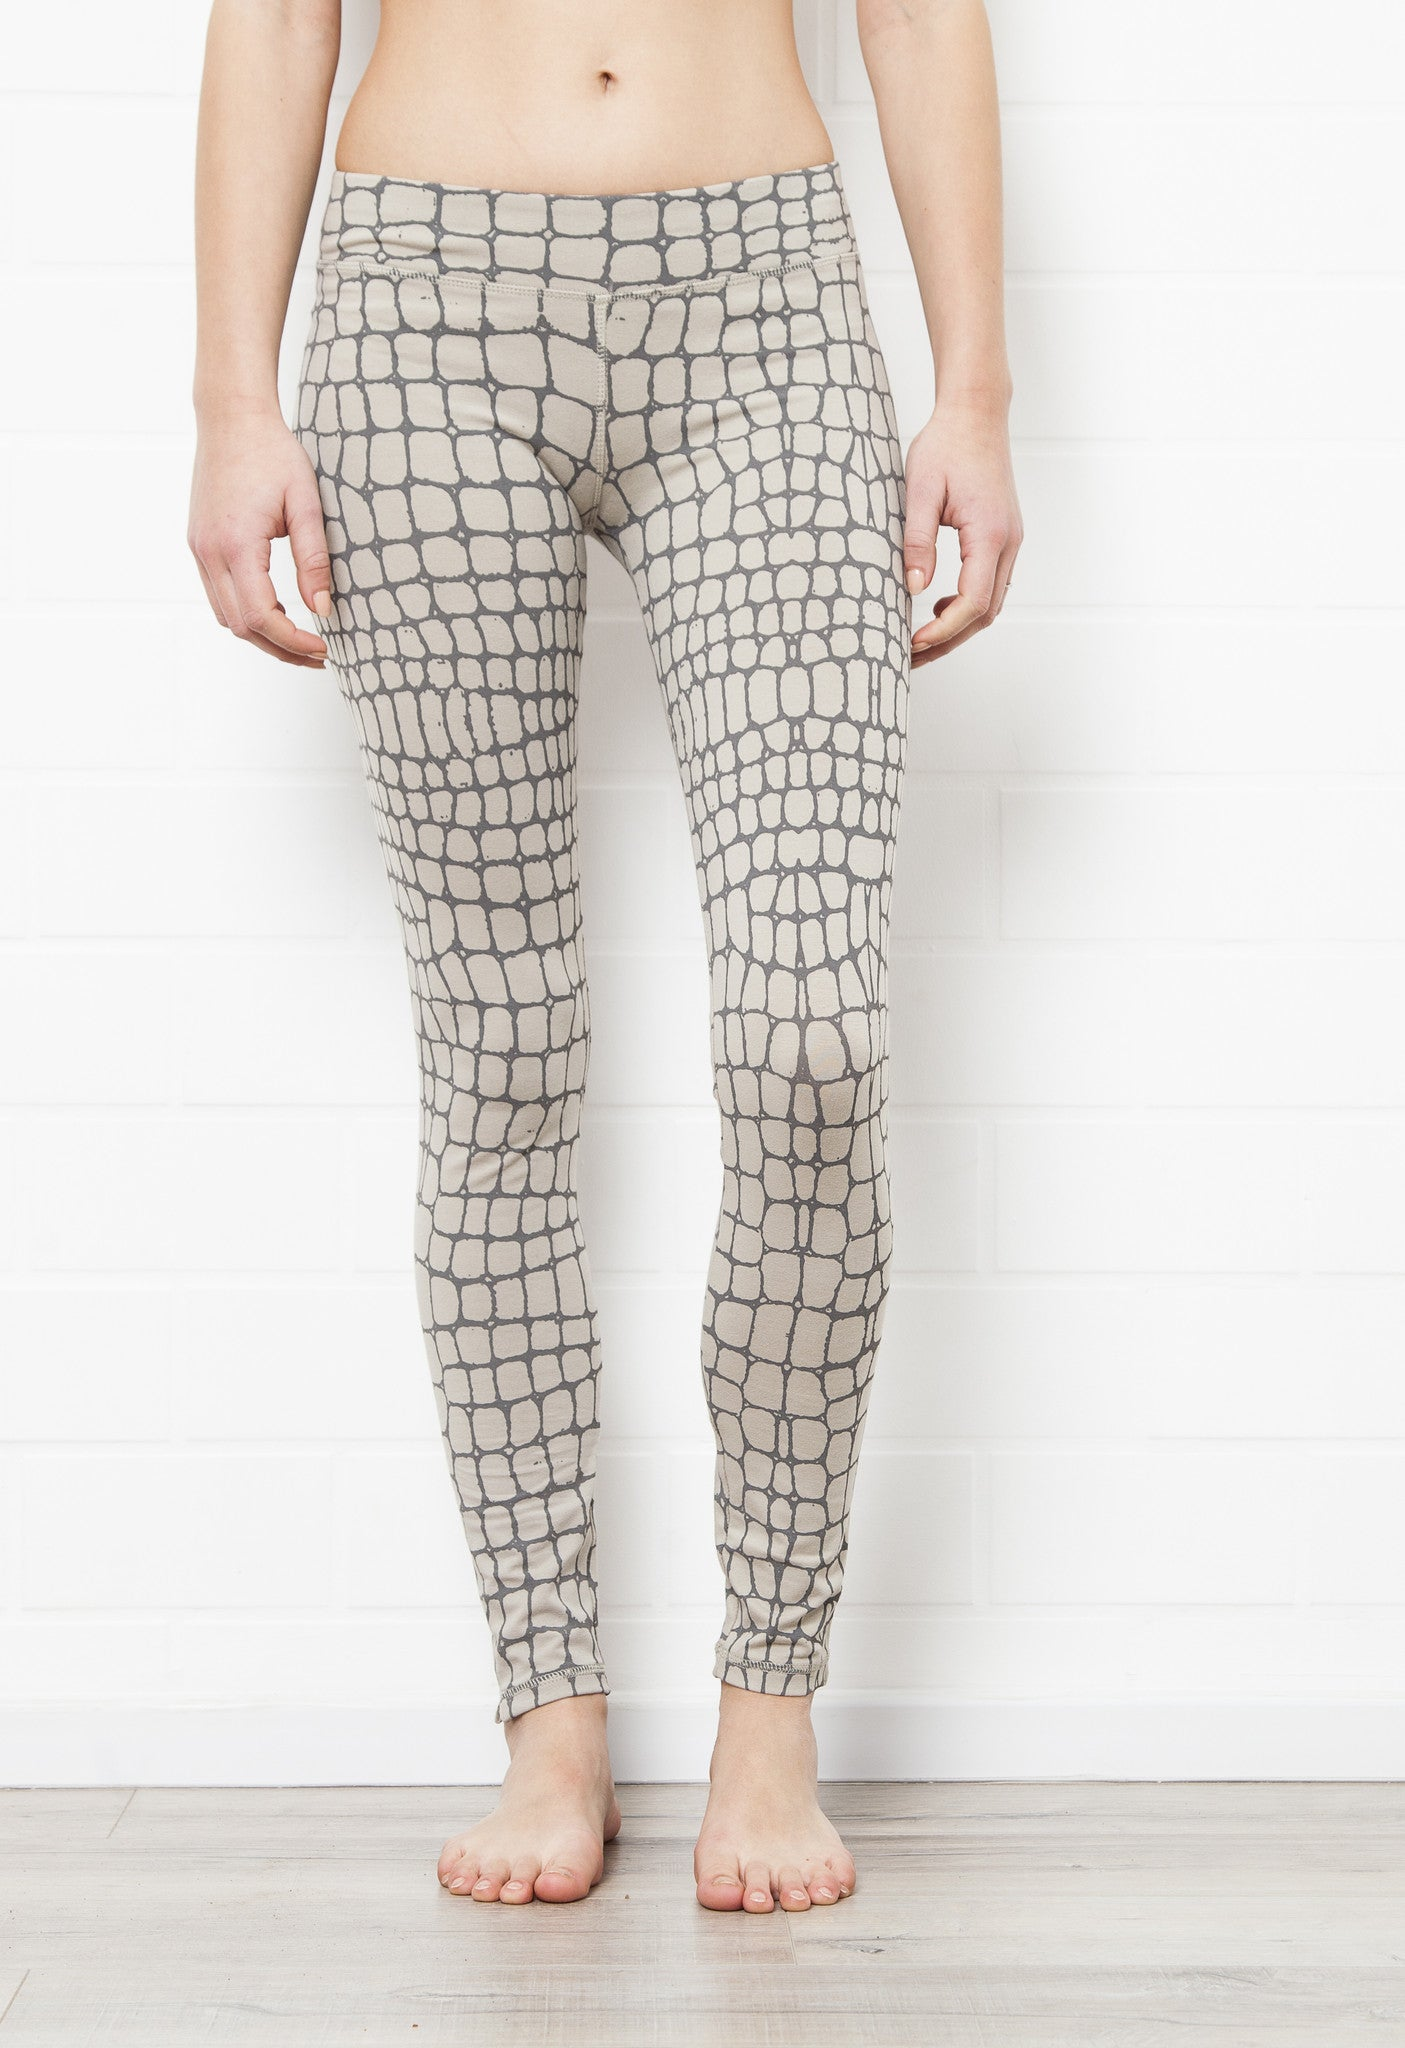 Grey Crocodile Leggings - Yoga Tights - FUNKY SIMPLICITY